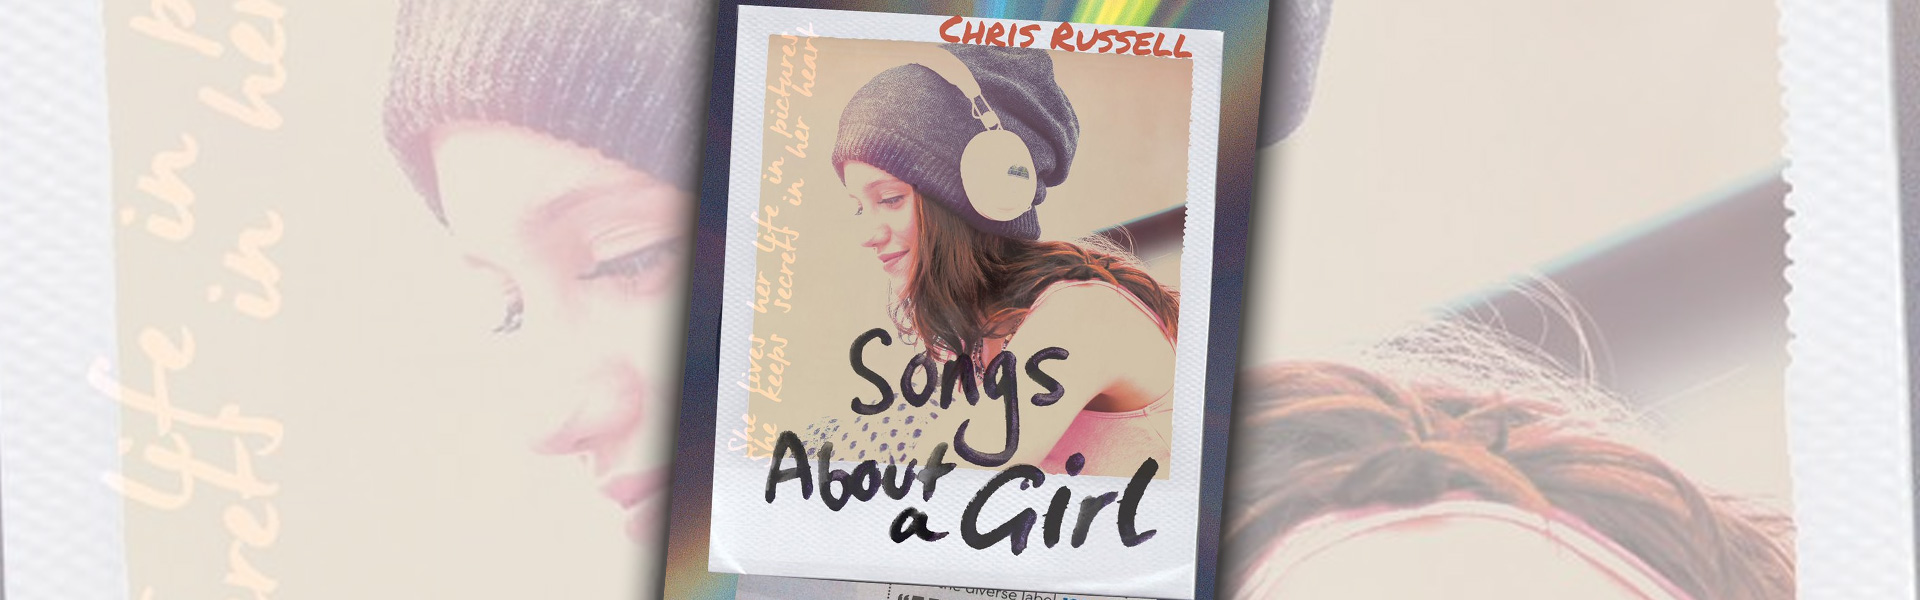 Chris Russell: Where Do Novels Come From? The Five Stages of Songs About a Girl